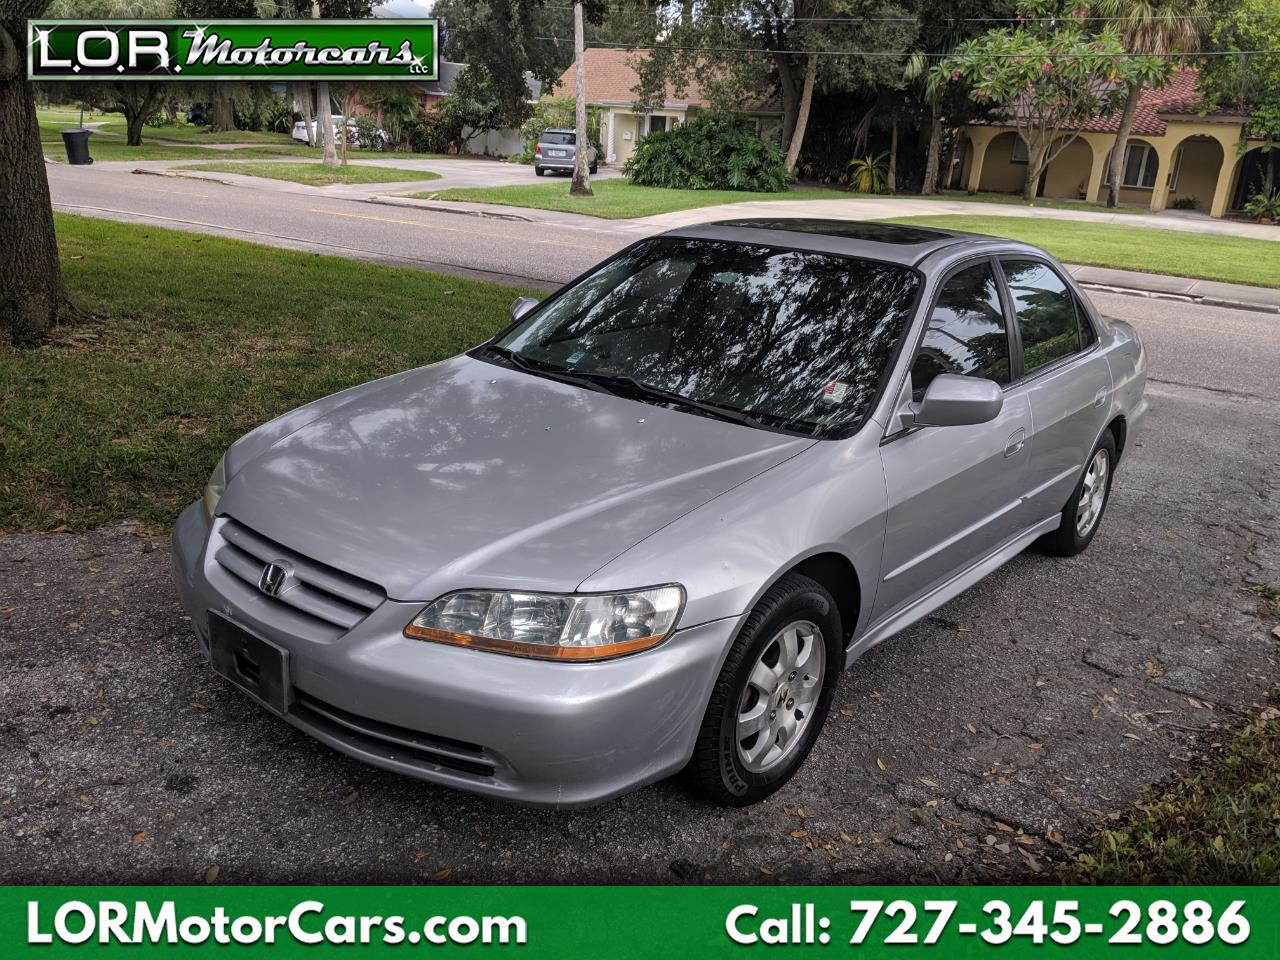 2002 Honda Accord 4dr Sedan EX 5-Spd